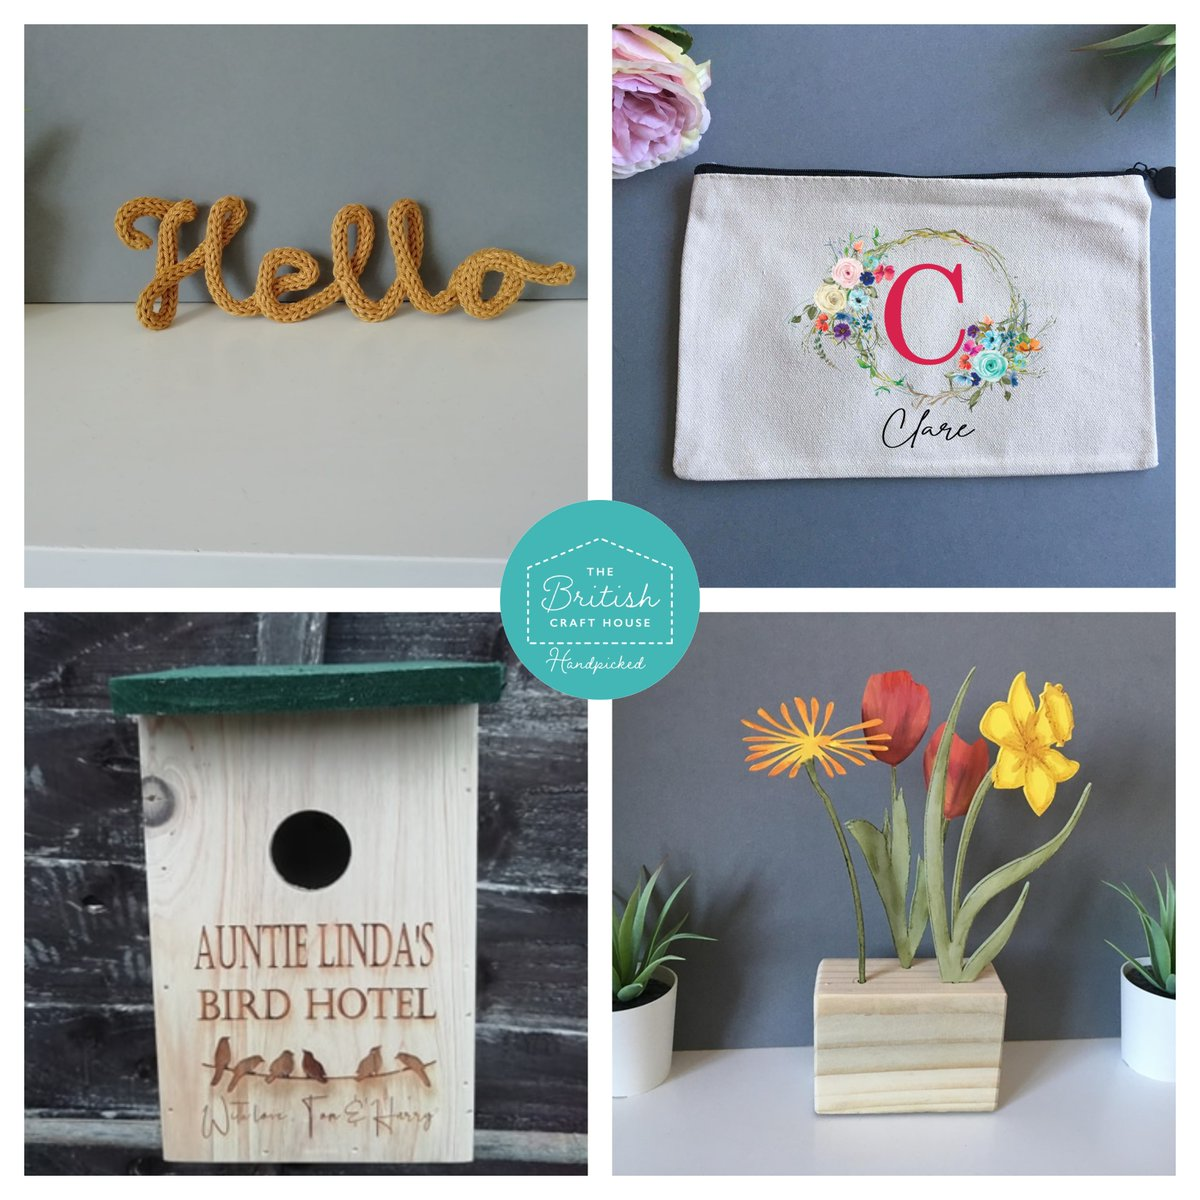 Have you seen this shop yet by fredandbo  So many great ideas & it's Bronnach's birthday today too! 🎂 #tbch #handmade #giftideas